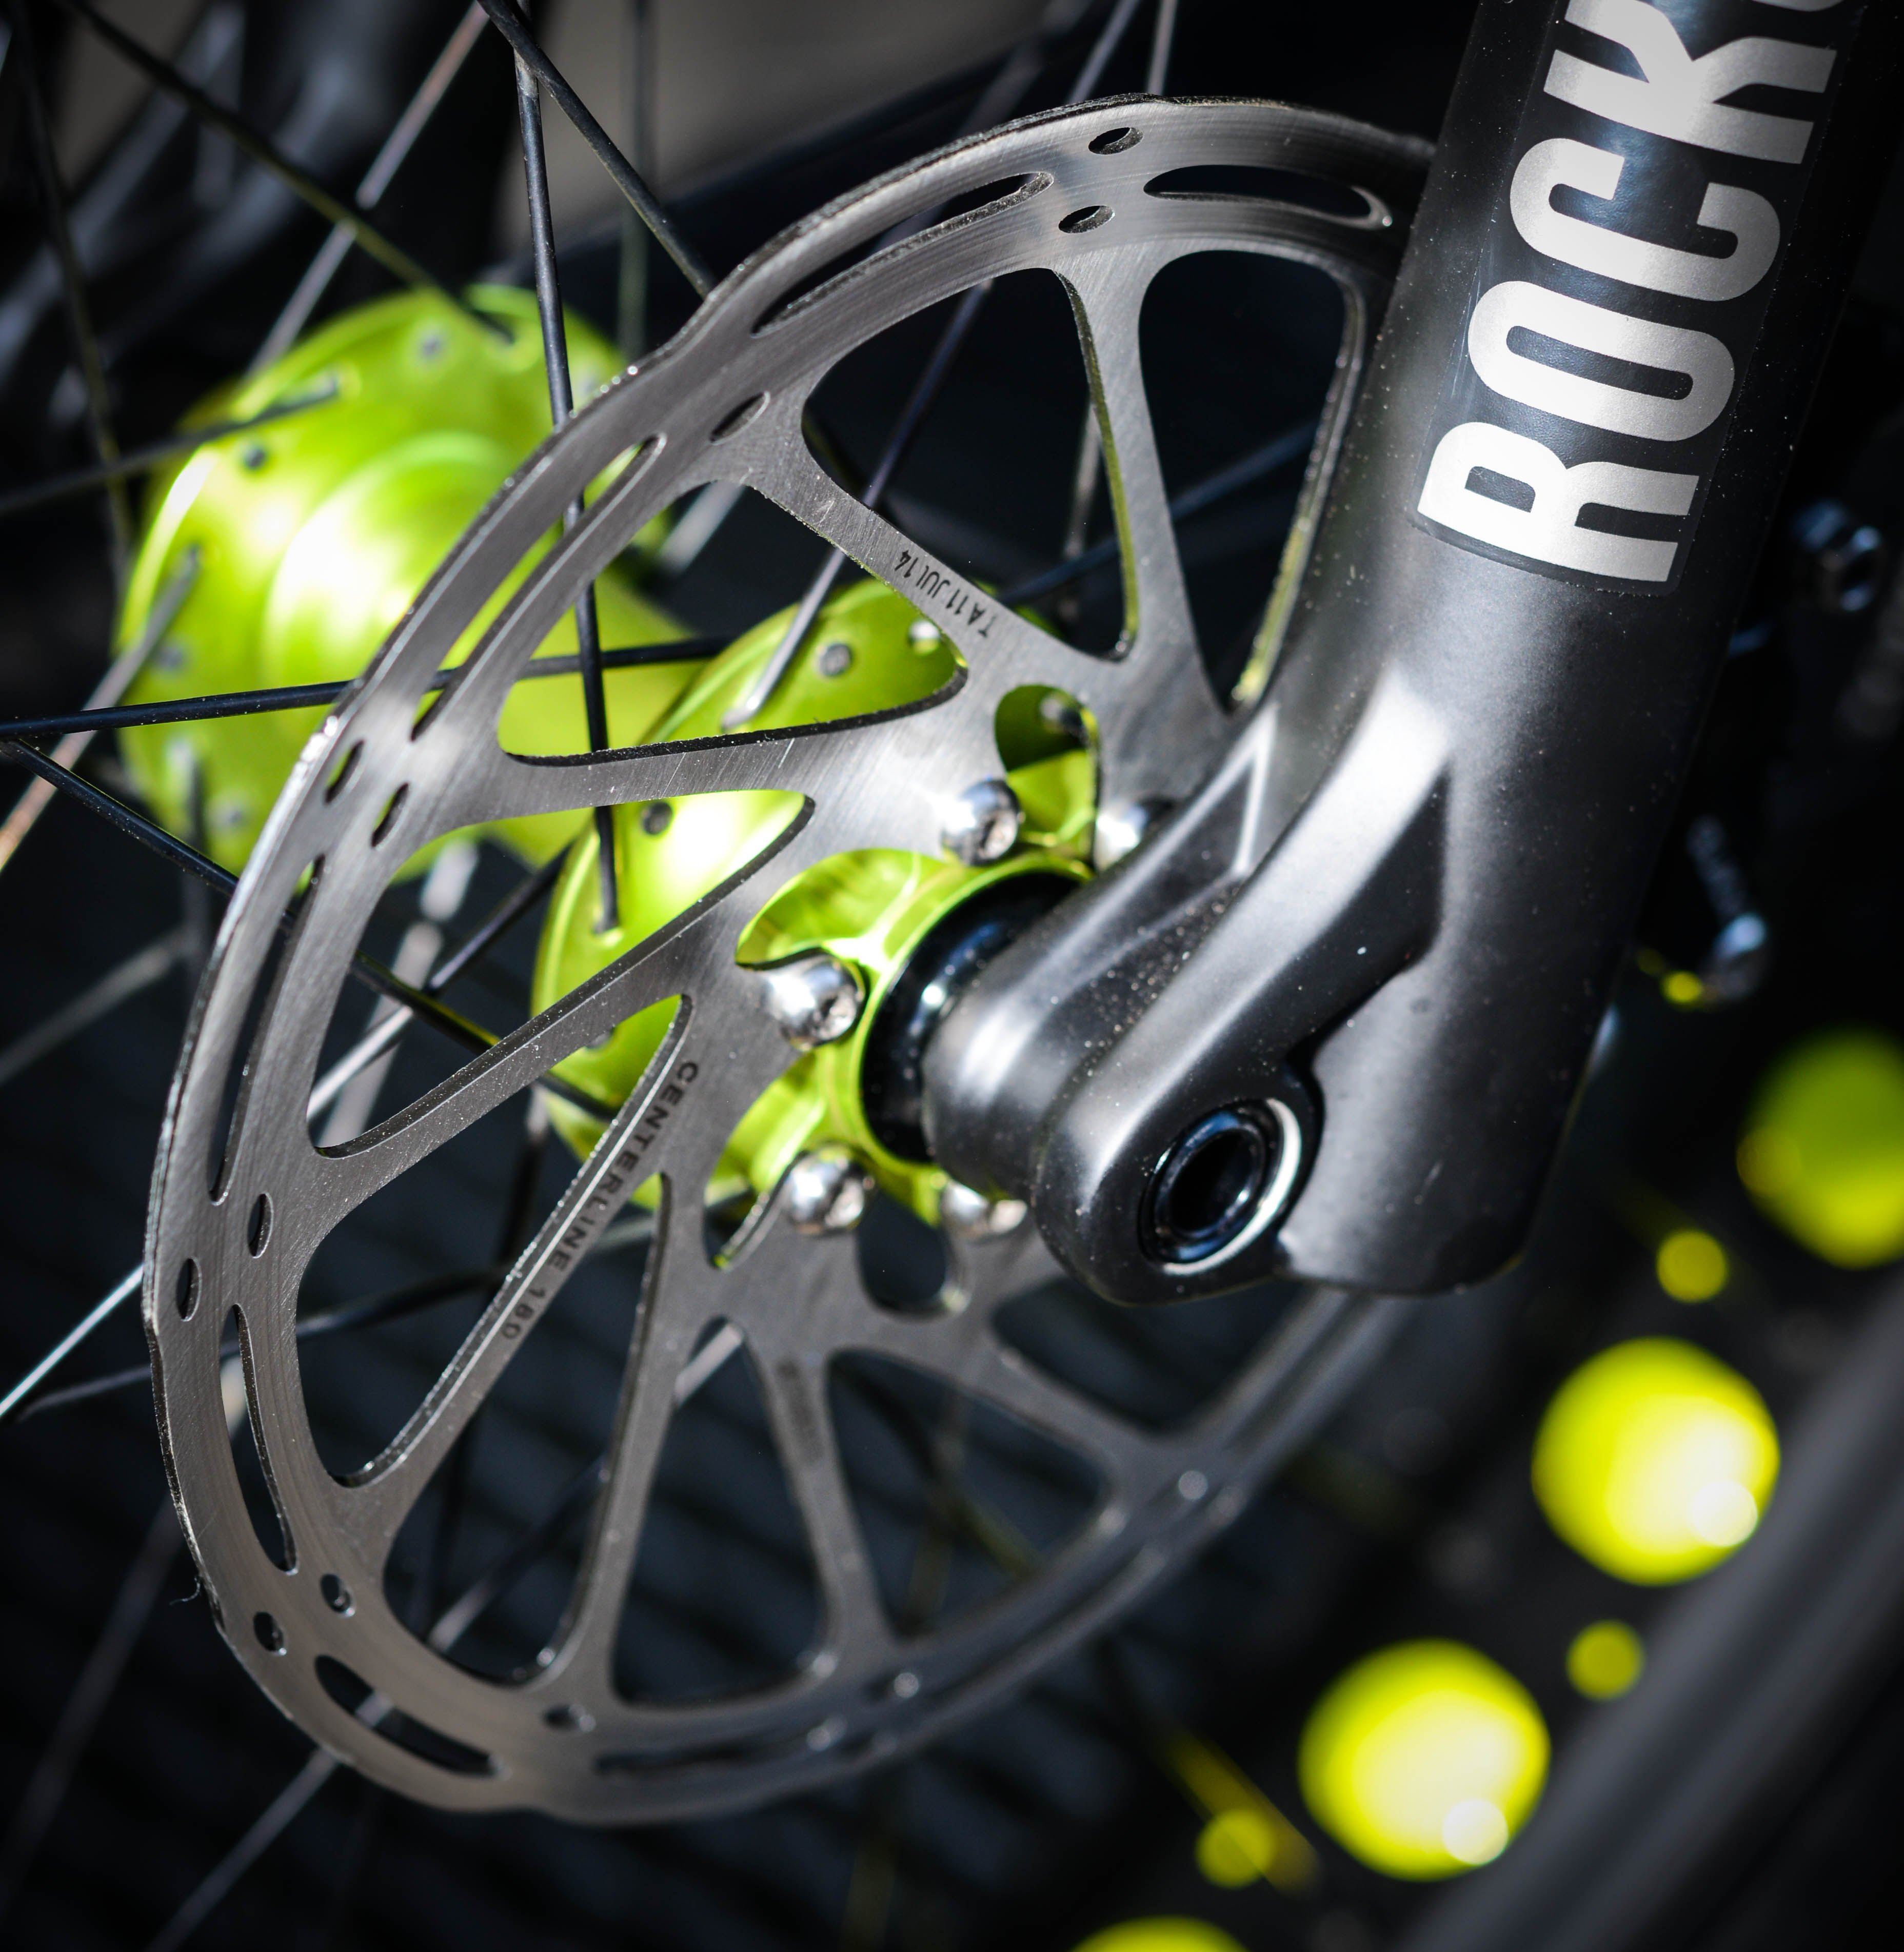 Review Sram Guide Rsc Brakes Singletracks Mountain Bike News Disc Brake Pad Avid X0 Trail R Rs The New Rotors Are Mostly Quiet And Far Better Than Previous Generation